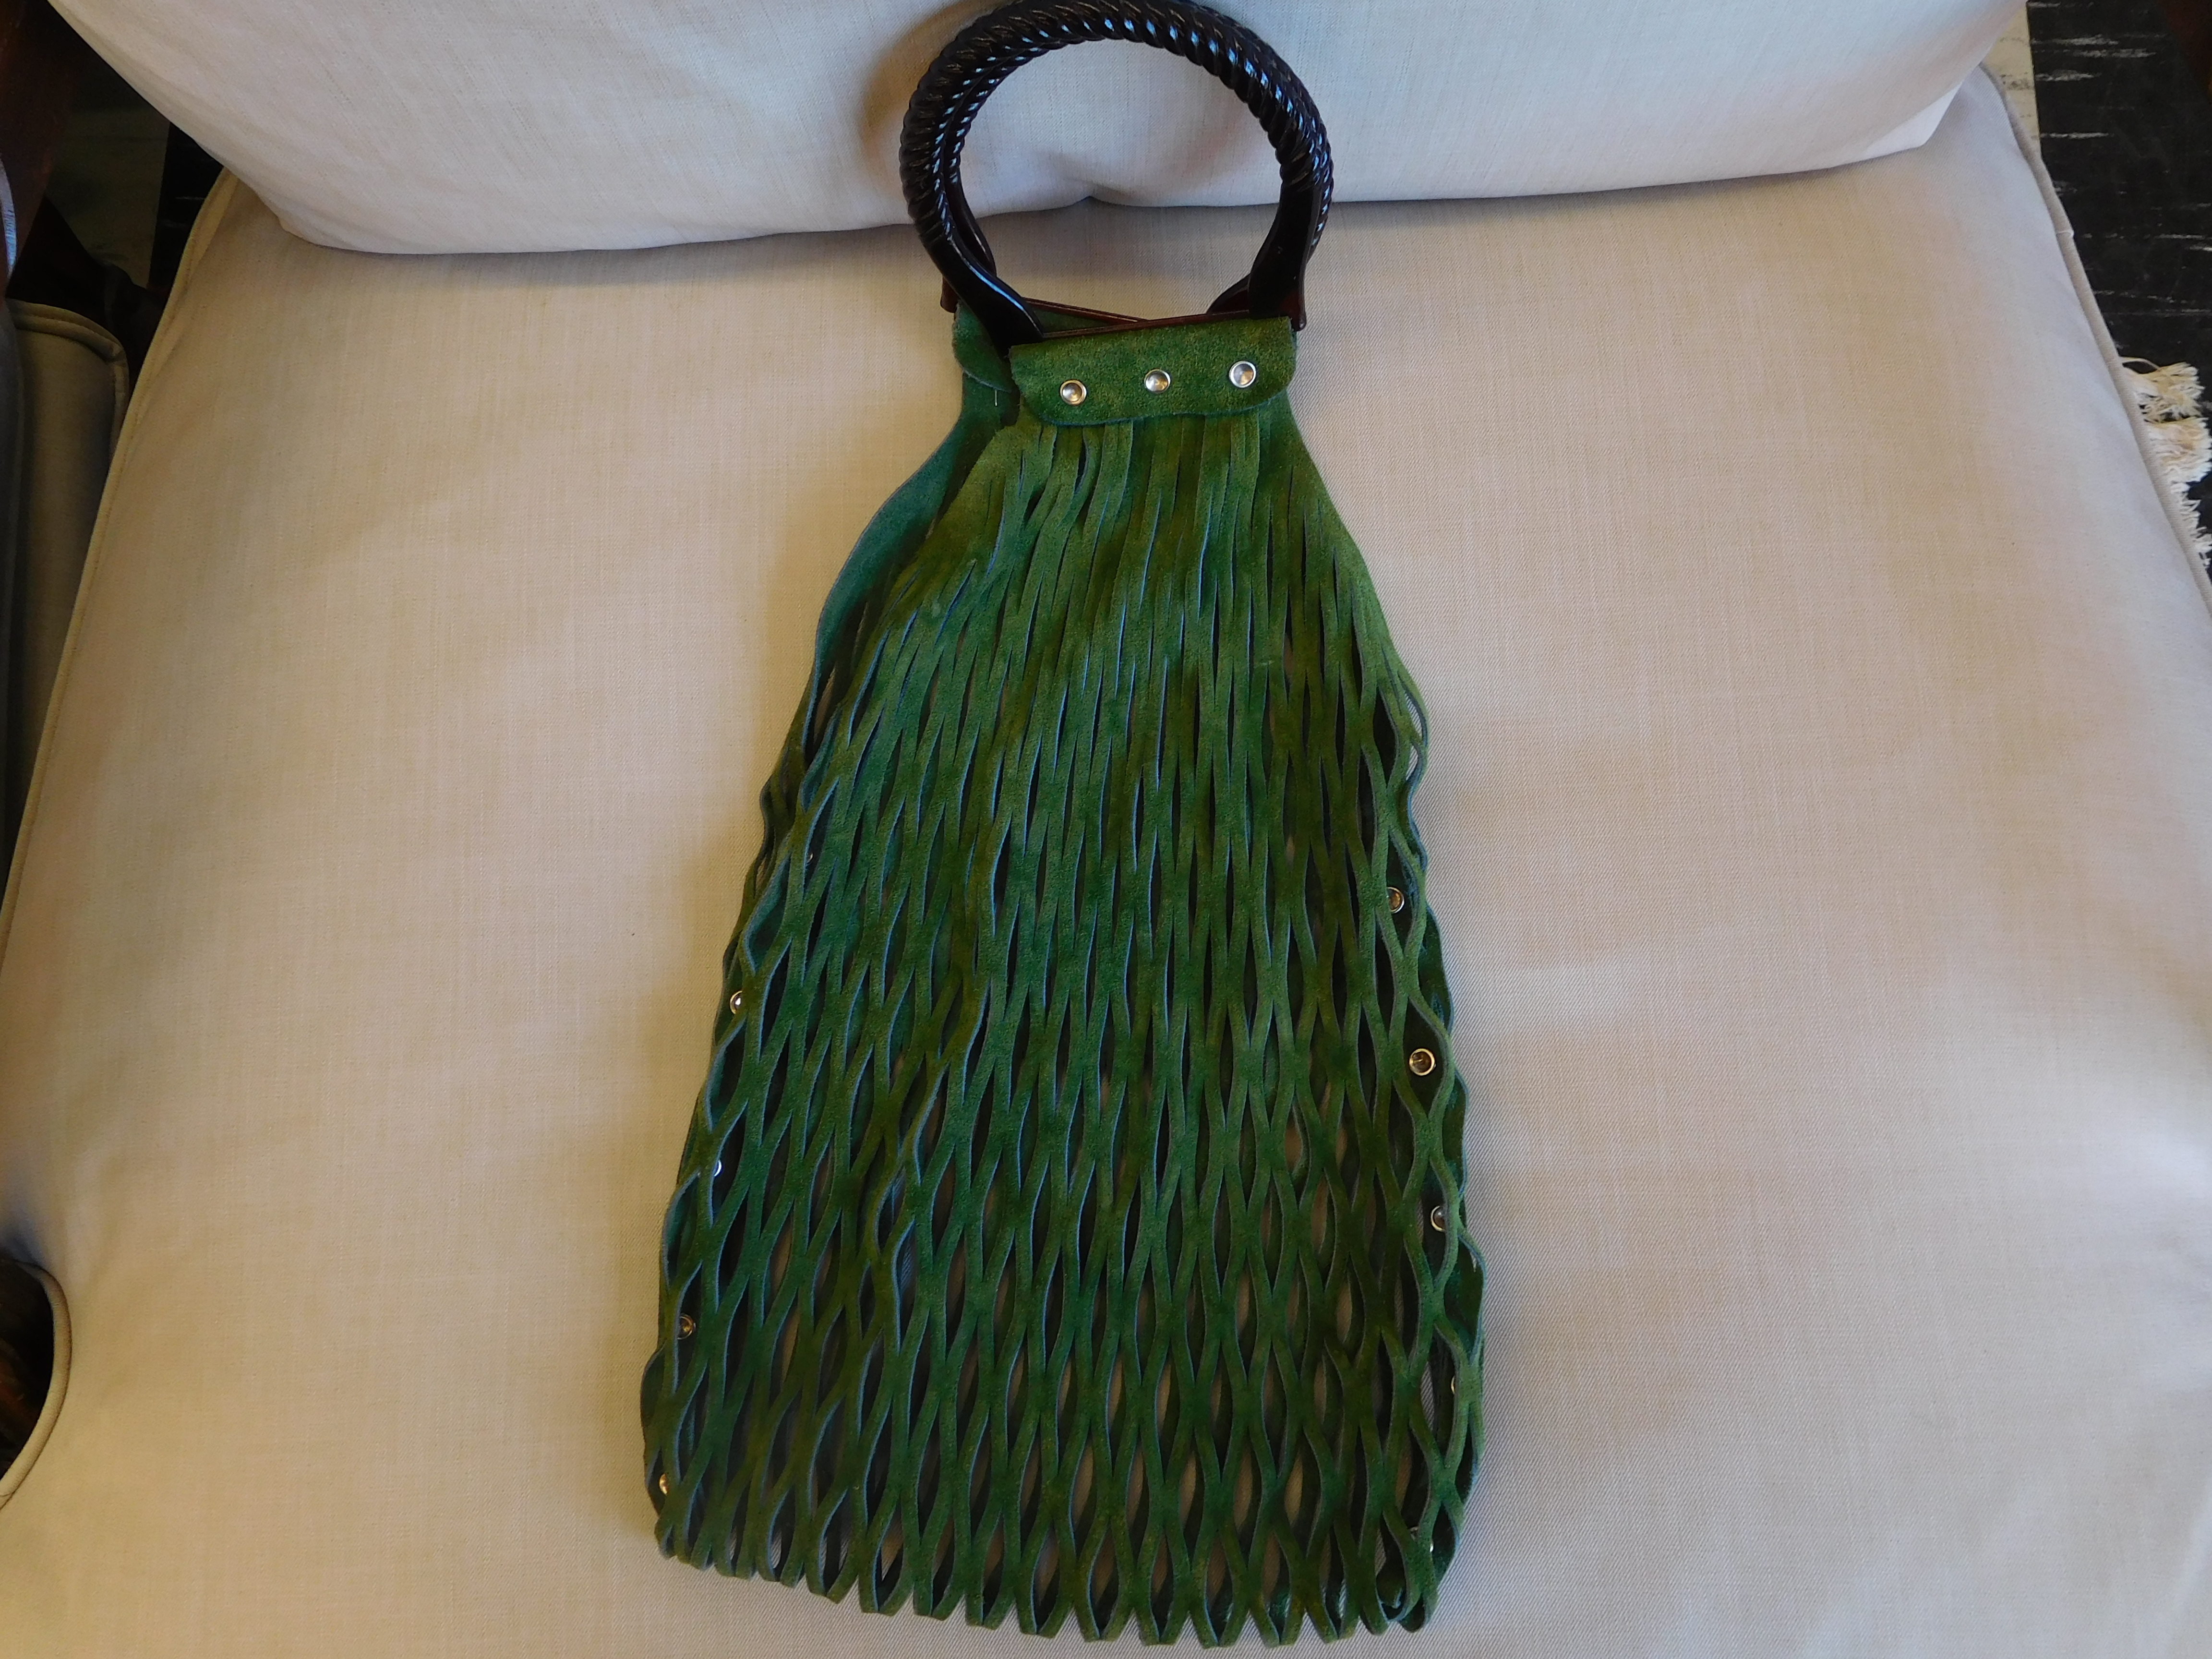 Woven Green Leather Hand Bag in Excellent Condition